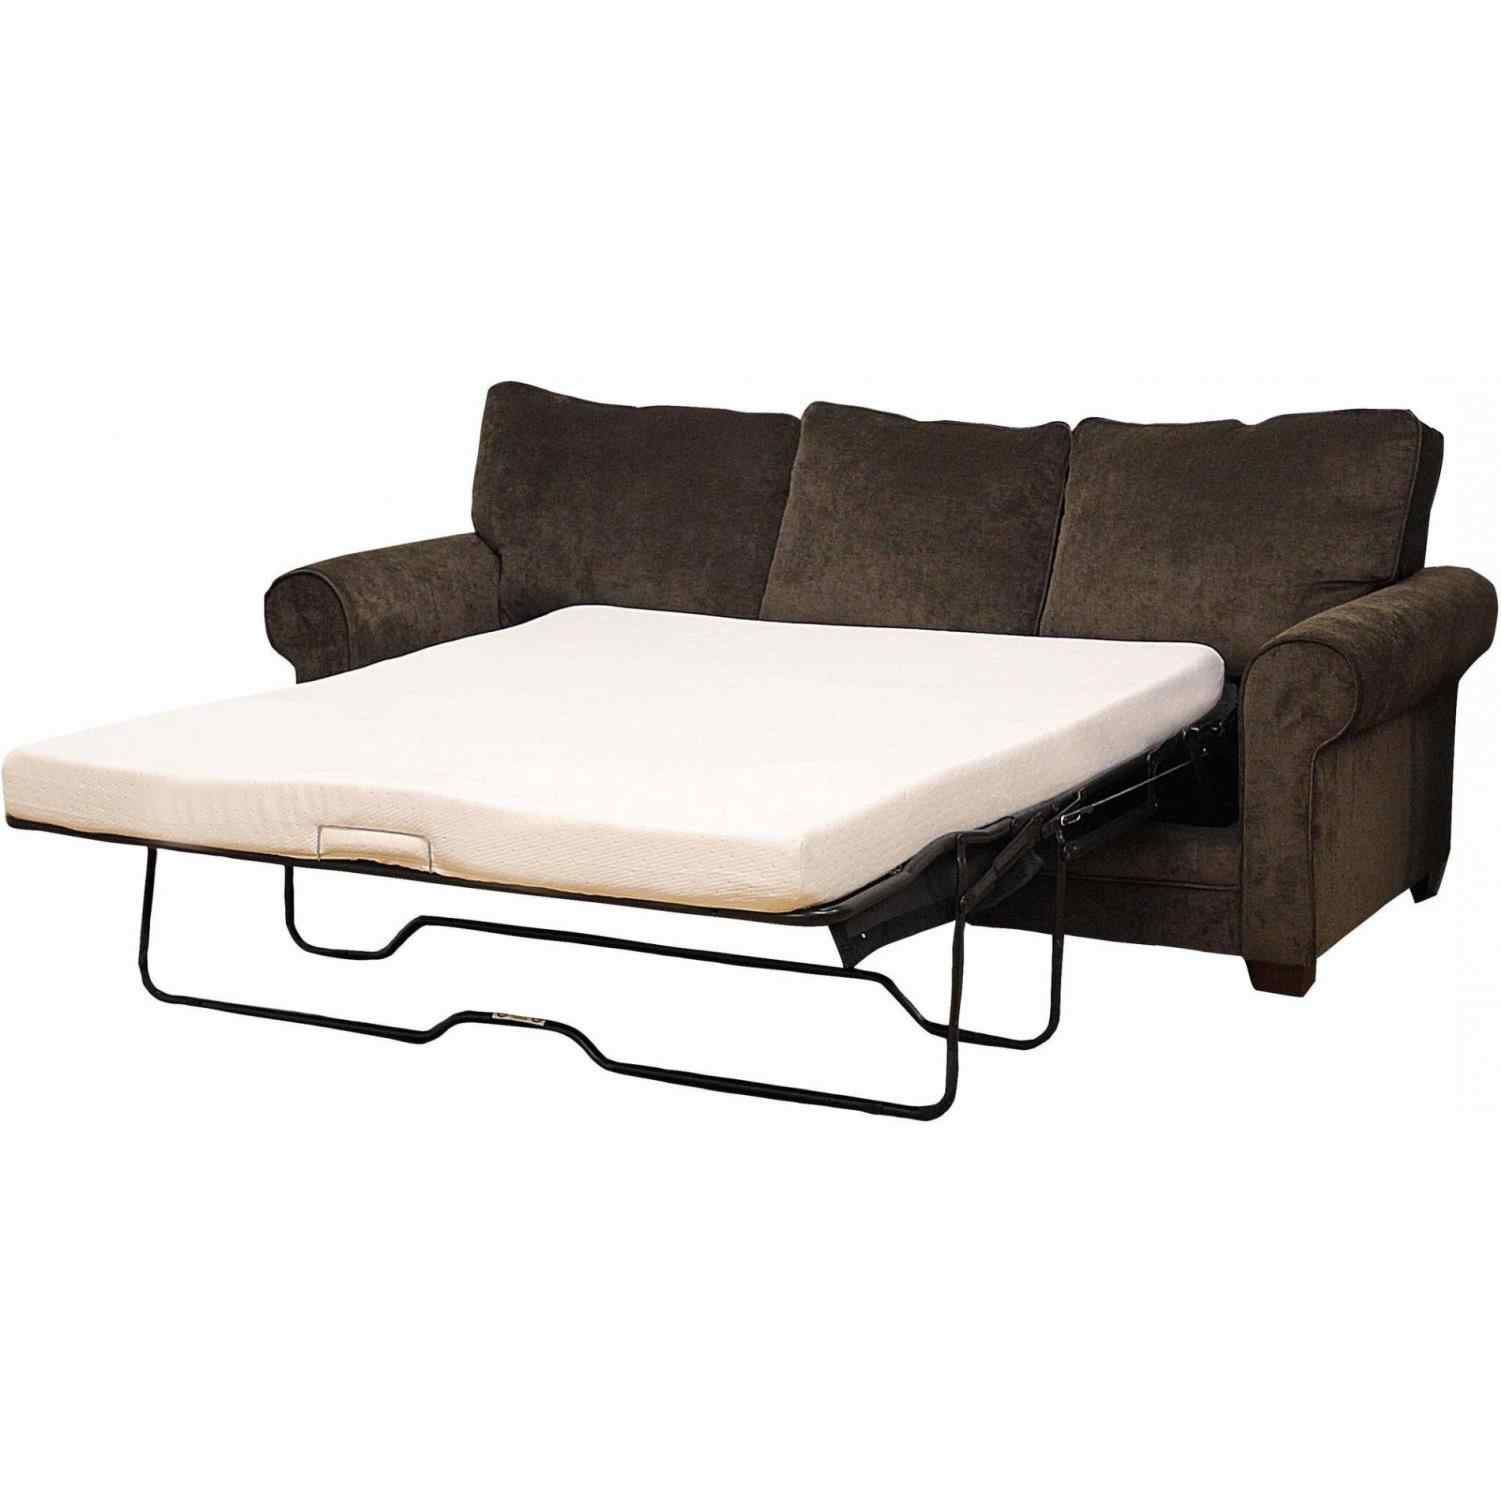 Ebay Furniture Rv Sofa Sleeper Air Mattress Bed Auckland Ebay Inflatable Pull Out Walmartcom Inflatable Rv Sofa Sleep Sofa Bed Mattress Foam Sofa Bed Best Sofa